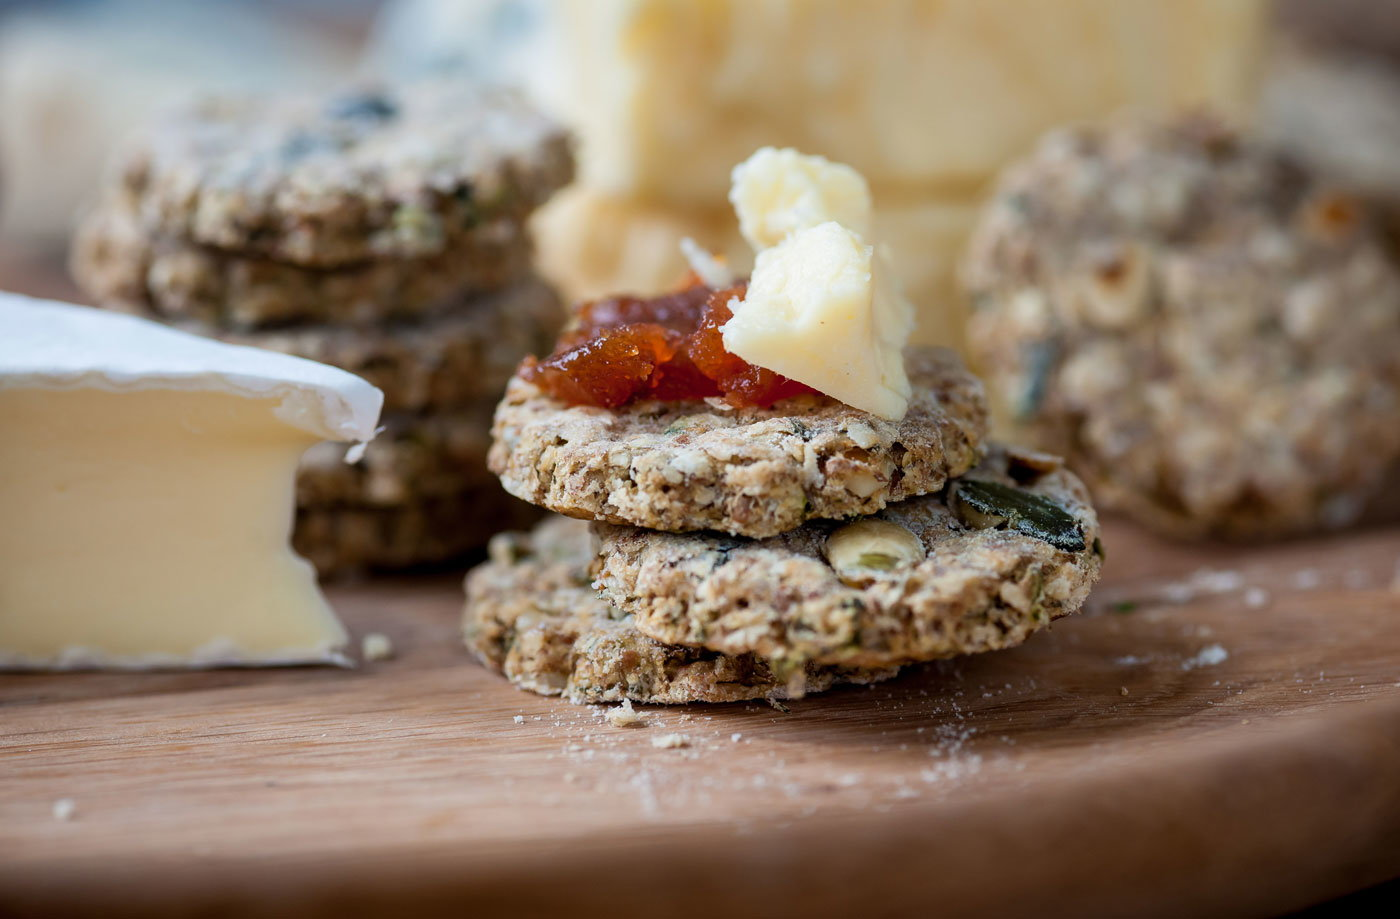 Marcus Wareing's pumpkin seed and thyme oatcakes  recipe